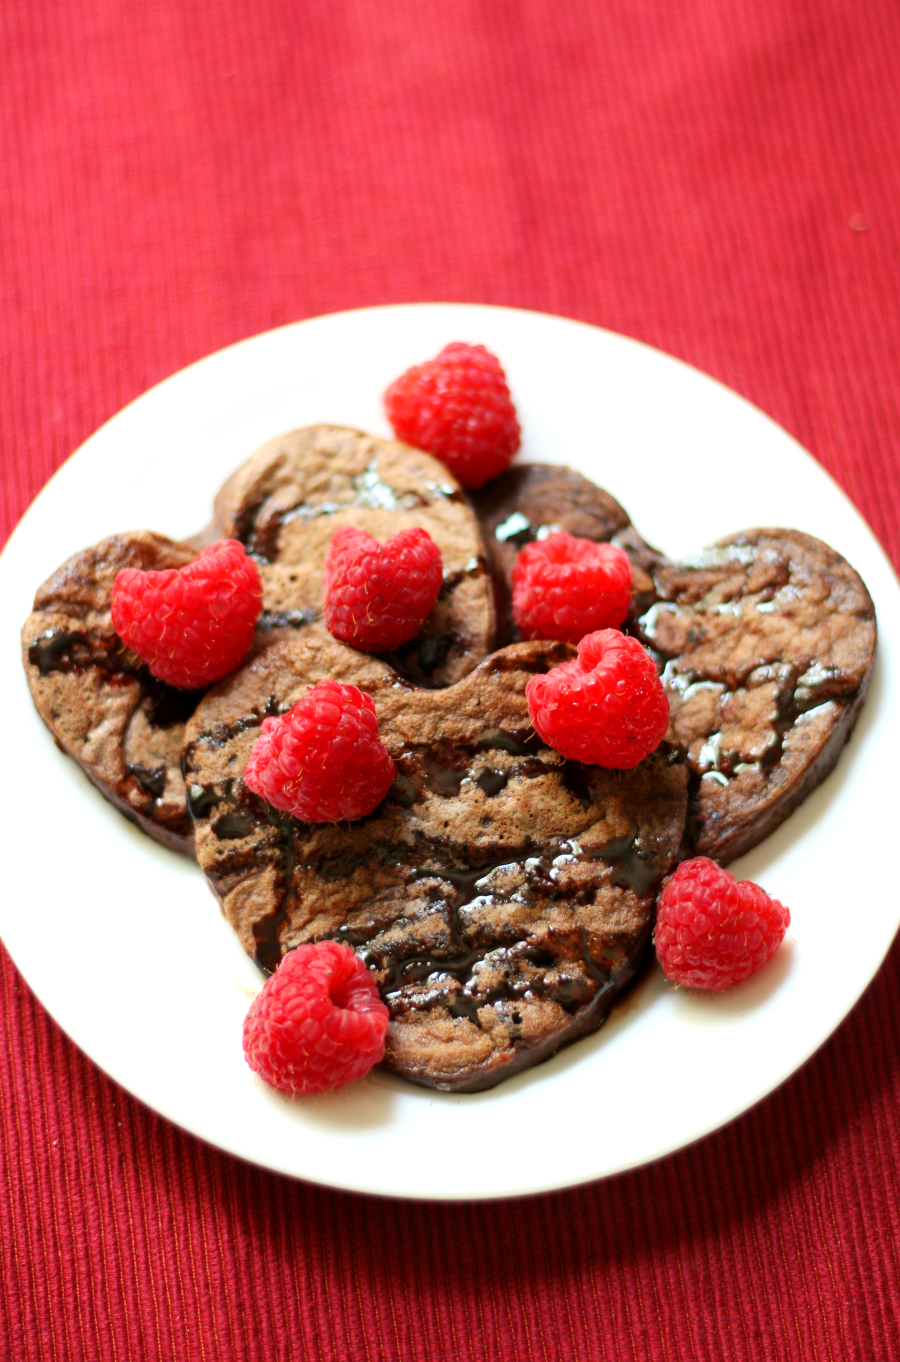 Chocolate Raspberry Heartcakes | Strength and Sunshine @RebeccaGF666 Show someone a little love with a batch of Chocolate Raspberry Heartcakes for a delicious & healthy, but decadent breakfast! A simple pancake recipe that's gluten-free, nut-free, single-serve, & vegan so the love can be shared with all!